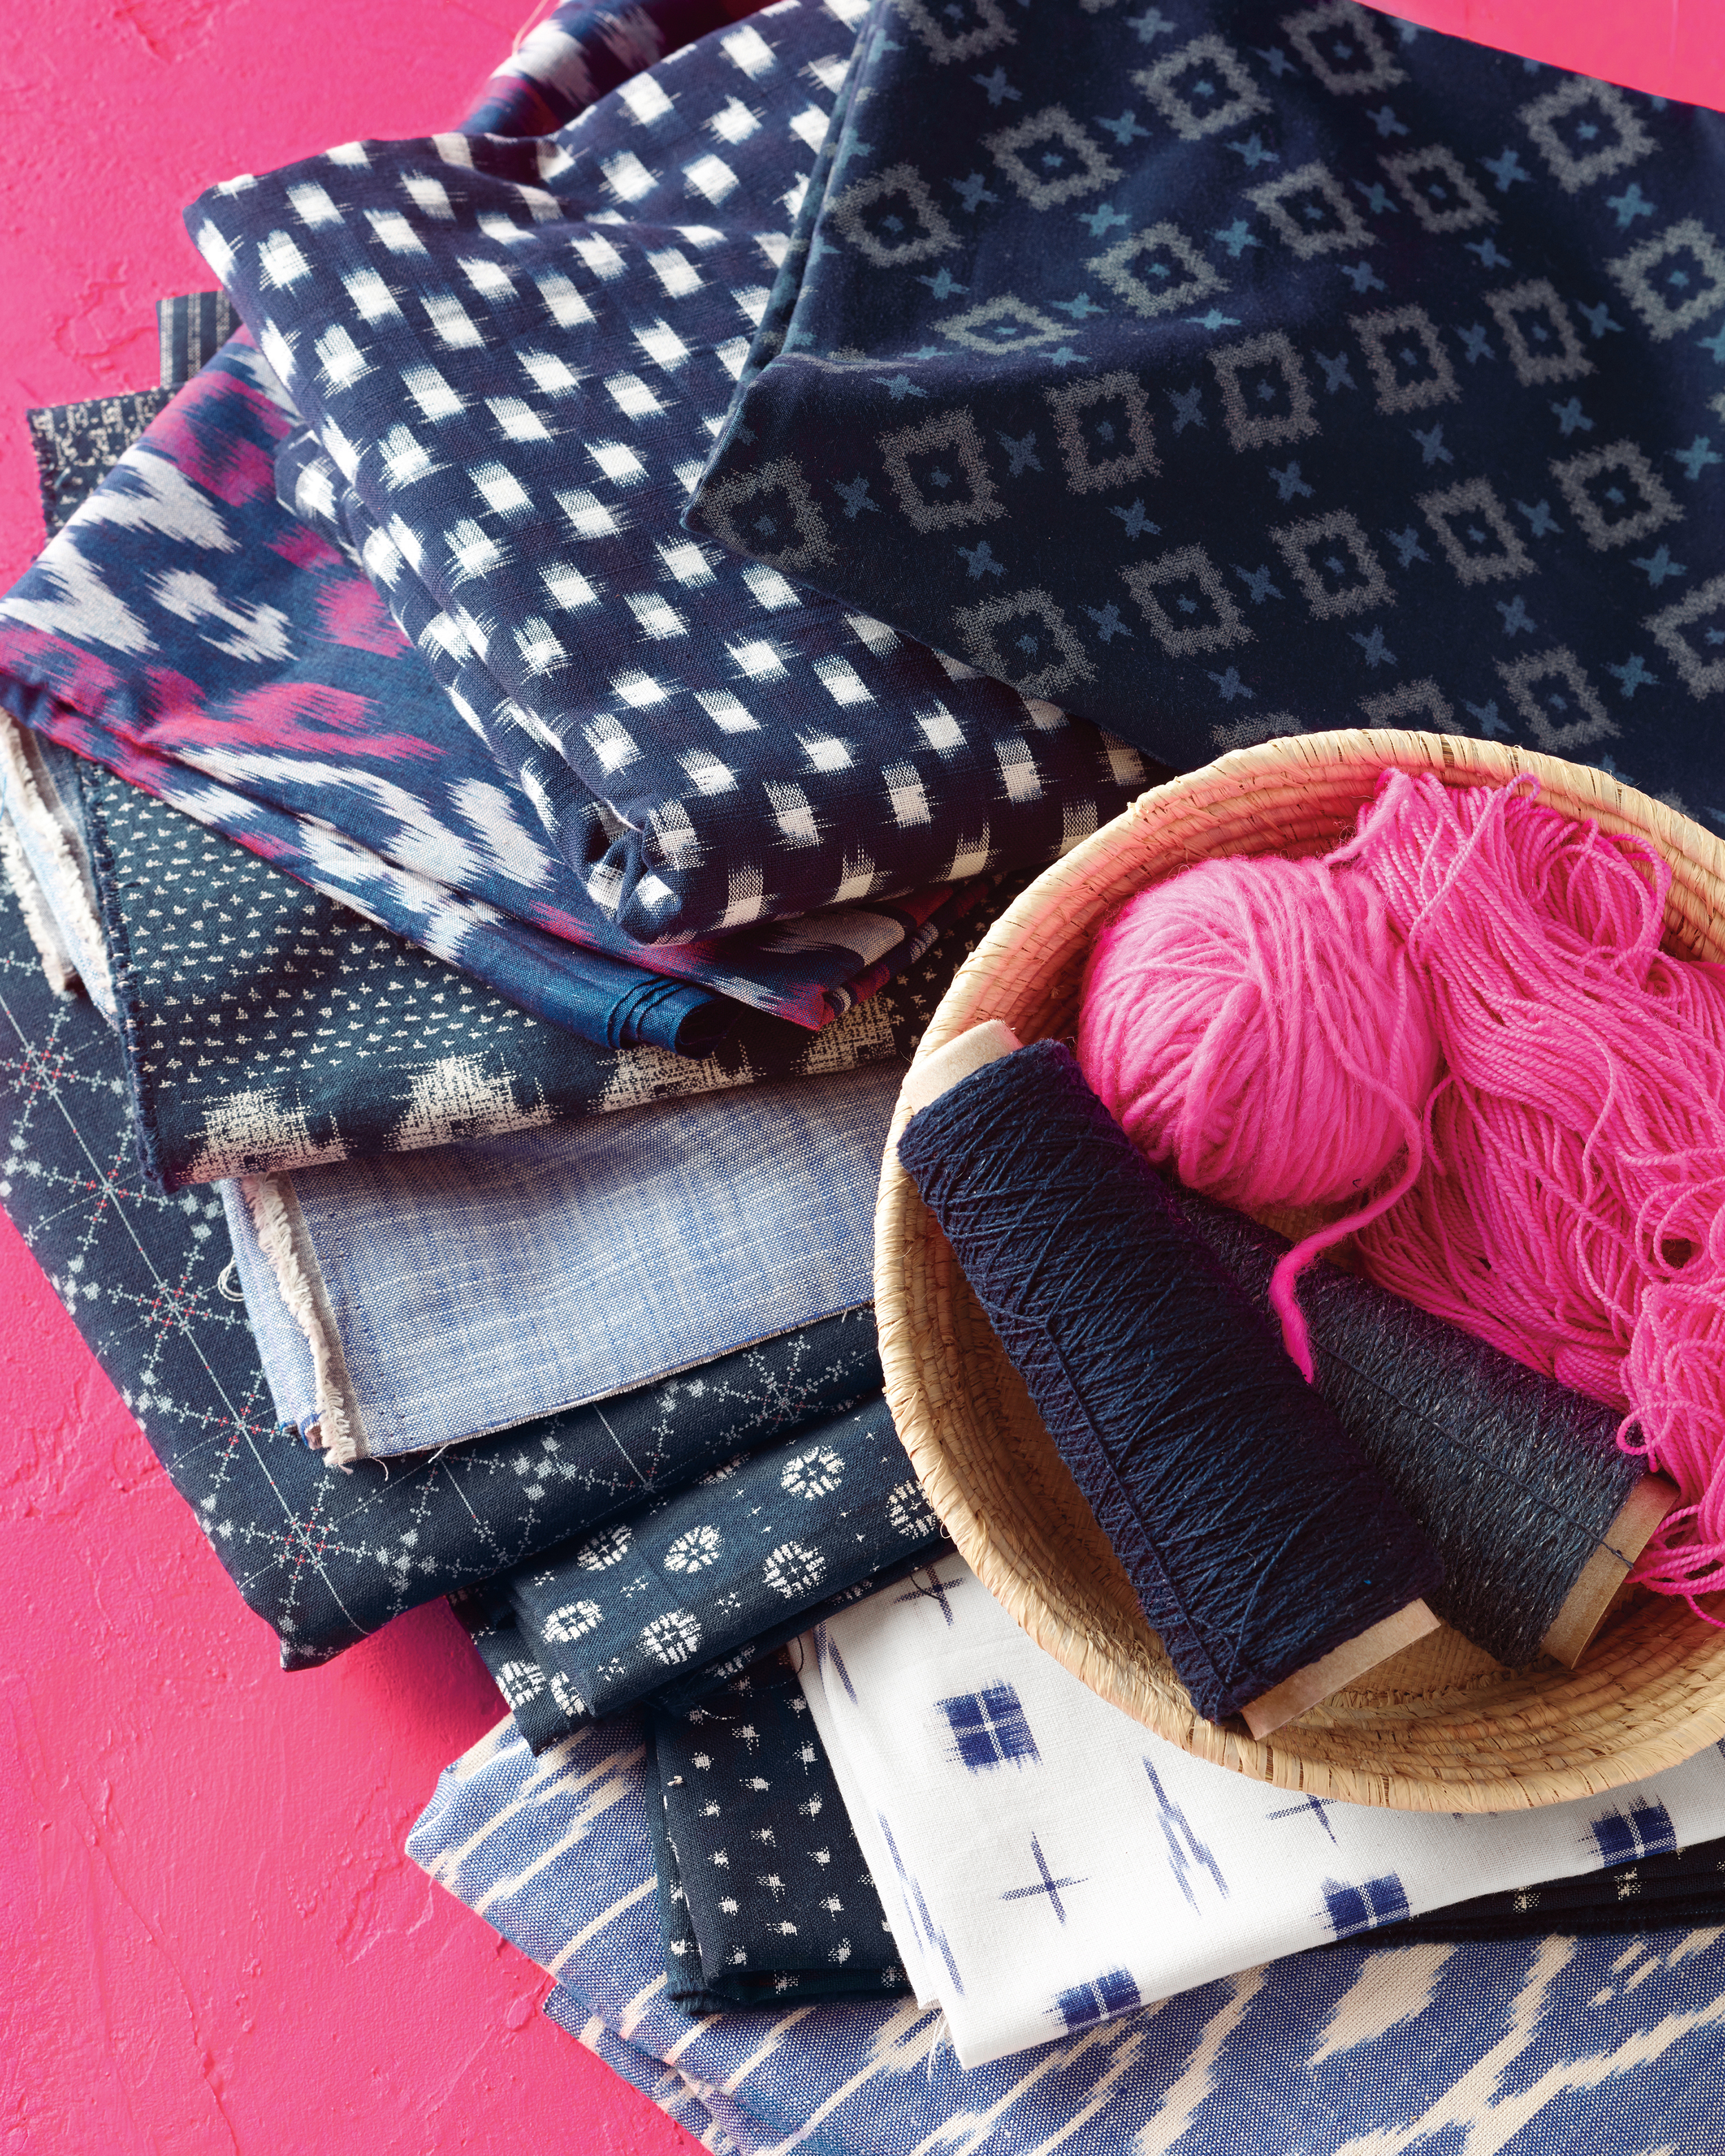 Colorful Traditional Textiles are the New Burlap